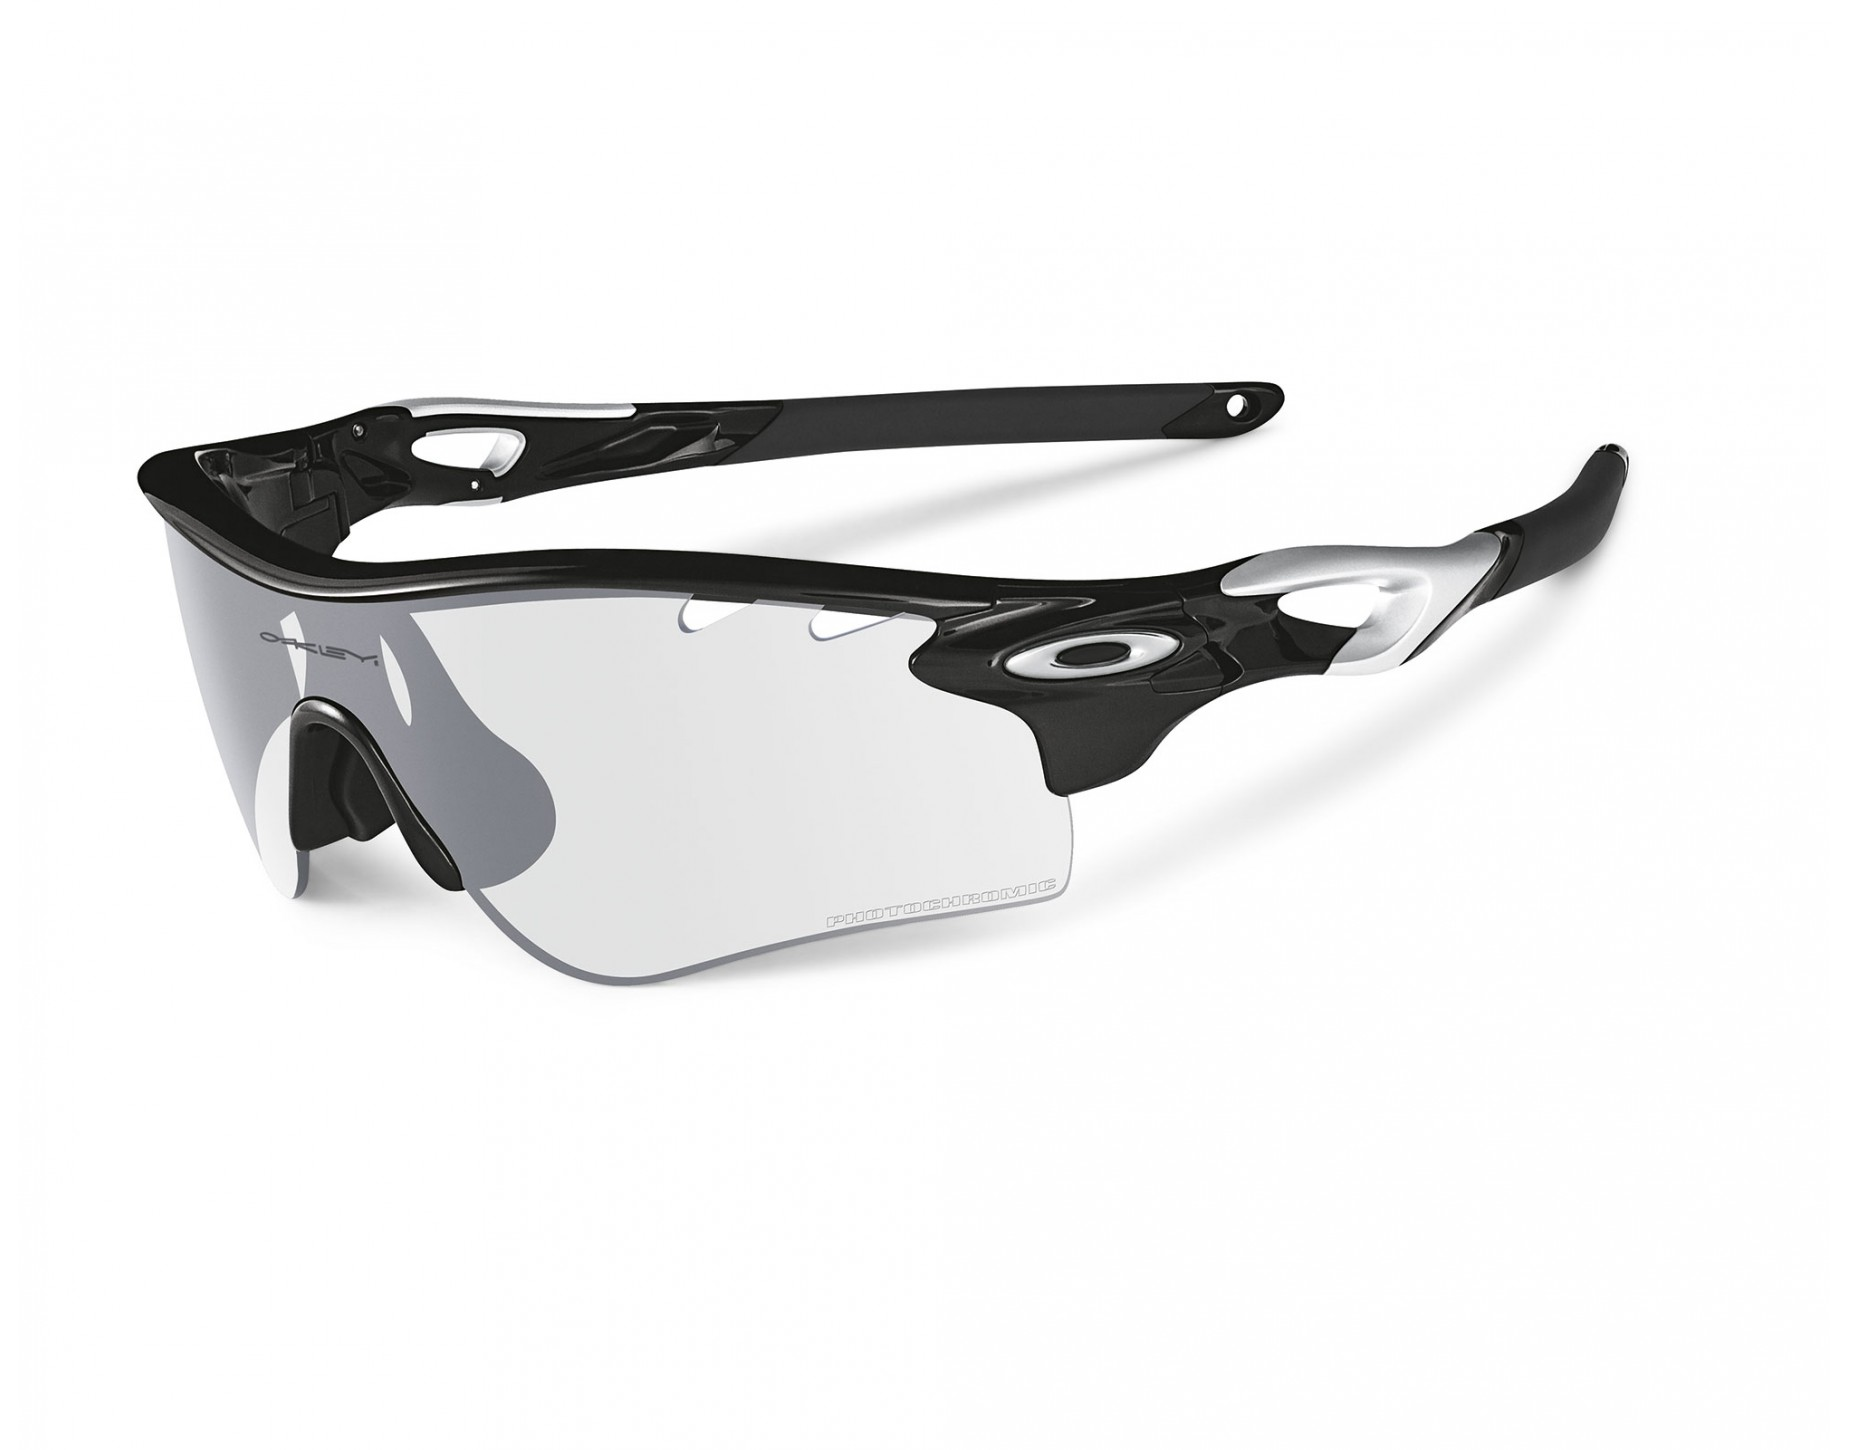 oakley sports goggles  Oakley Sports Goggles - atlantabeadgallery